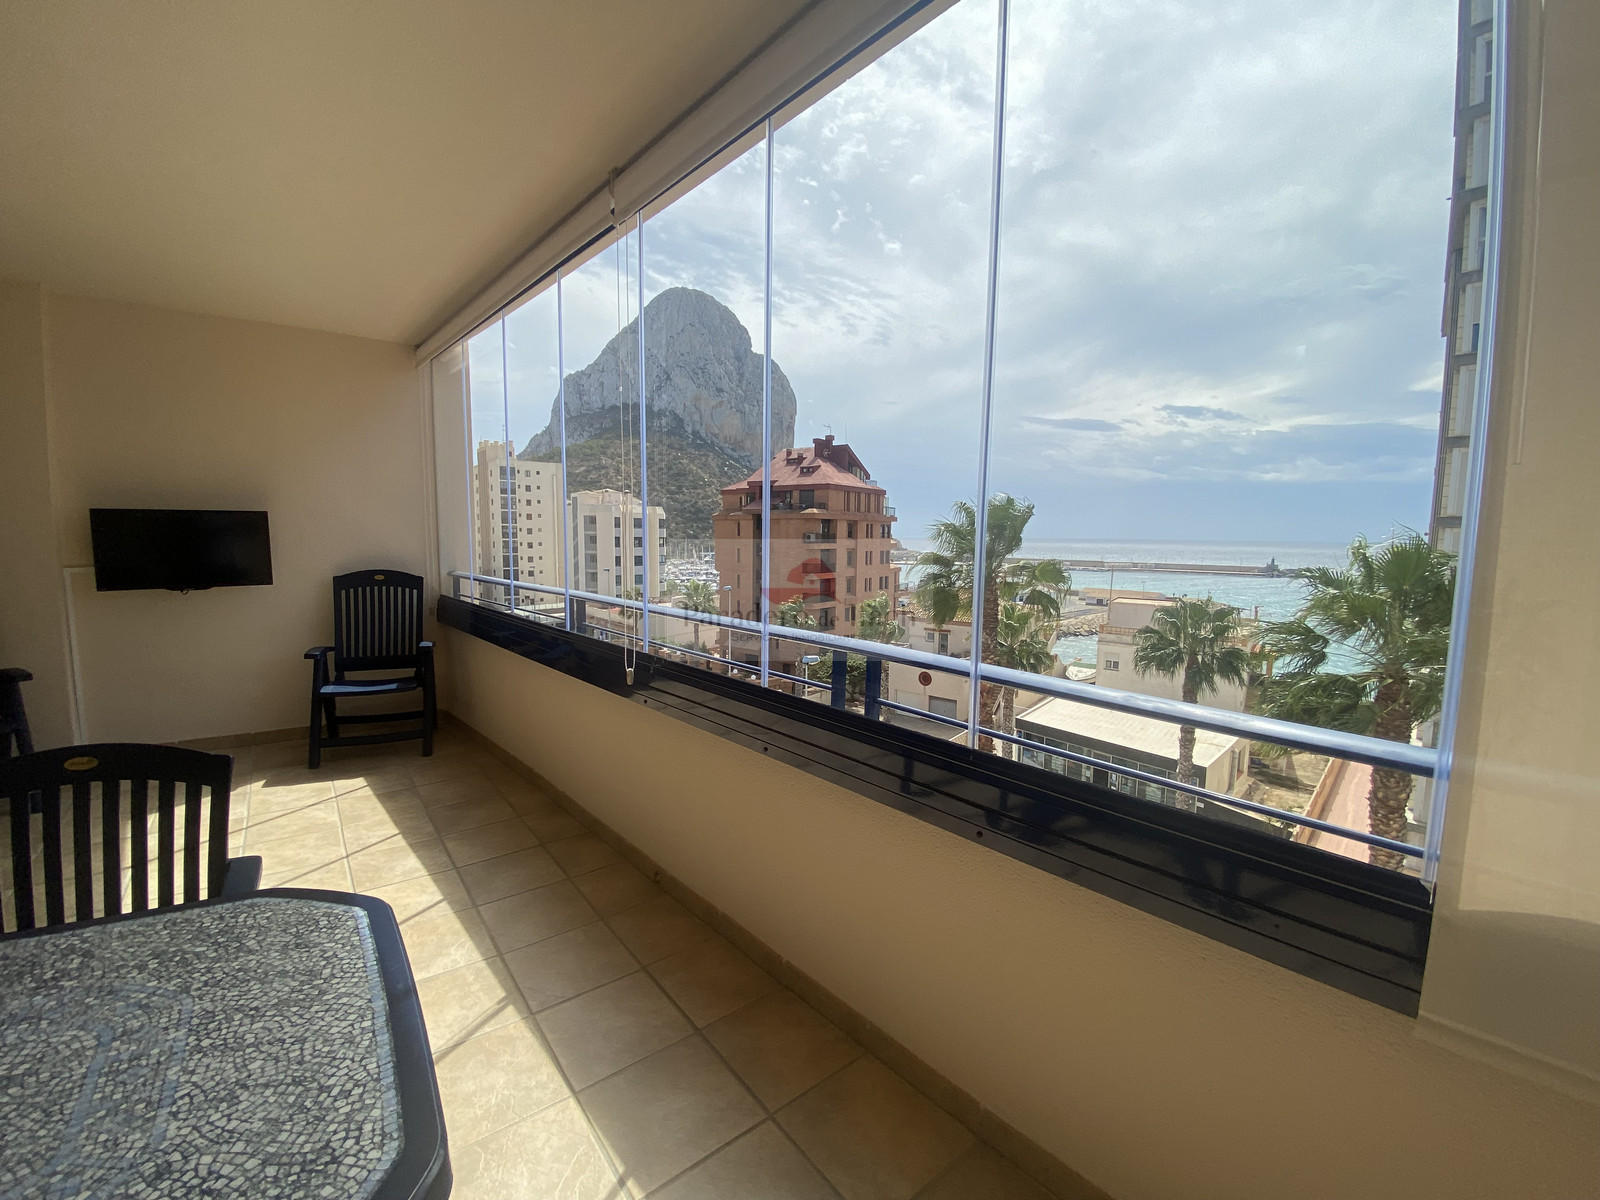 Appartement -                               Calpe -                               1 chambres -                               0 occupants